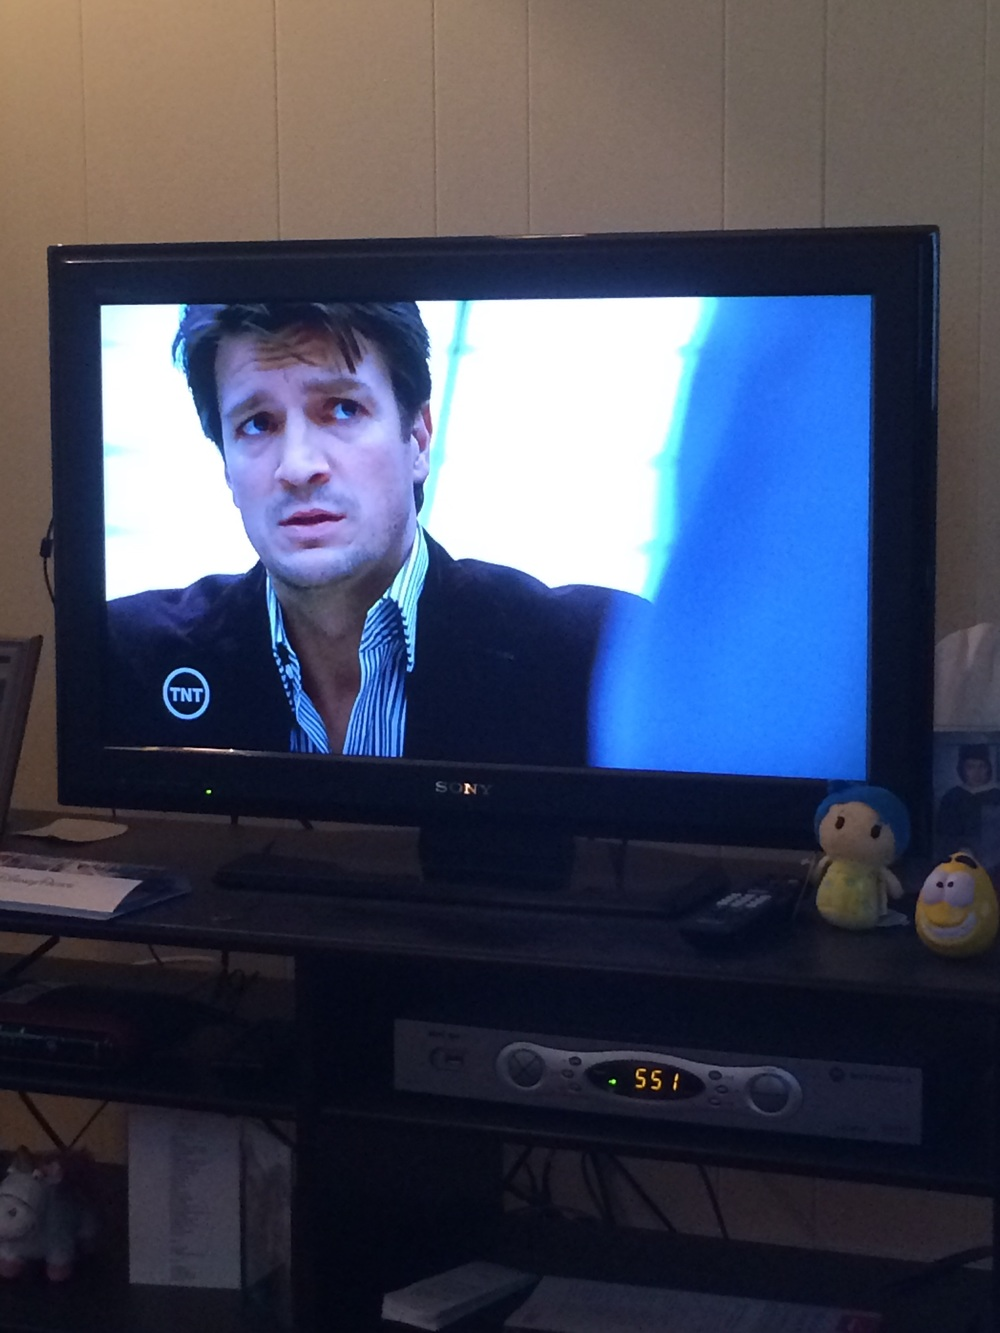 Thank god TNT has approx. 6 hours of  Castle  reuns on every night!